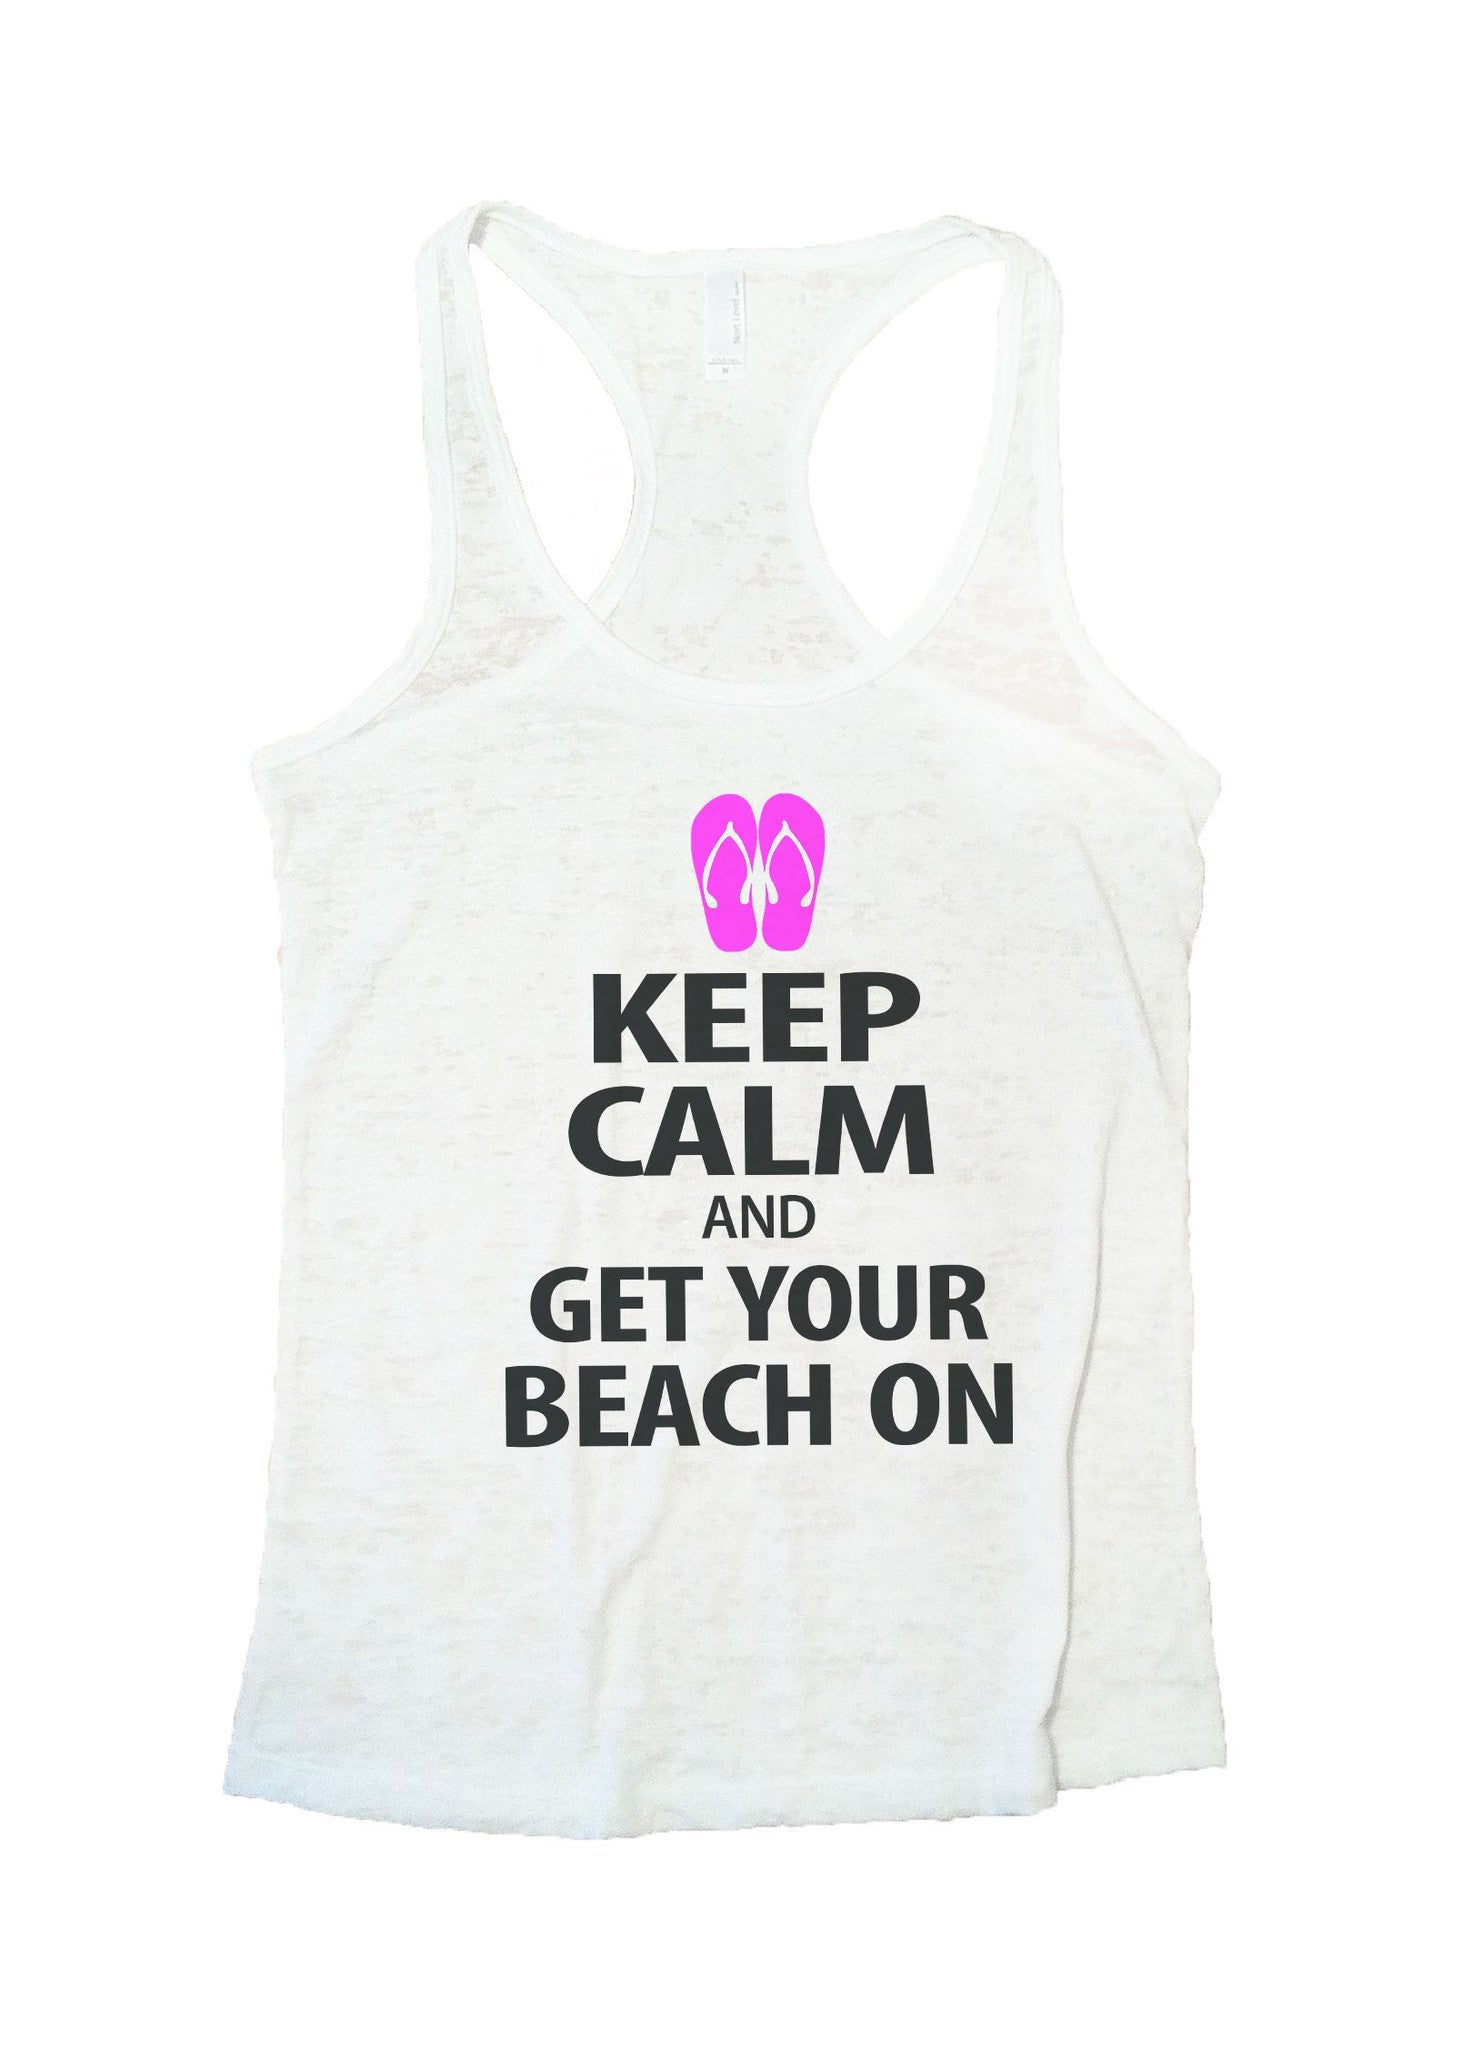 Keep Calm And Get Your Beach On Burnout Tank Top By BurnoutTankTops.com - 550 - Funny Shirts Tank Tops Burnouts and Triblends  - 6